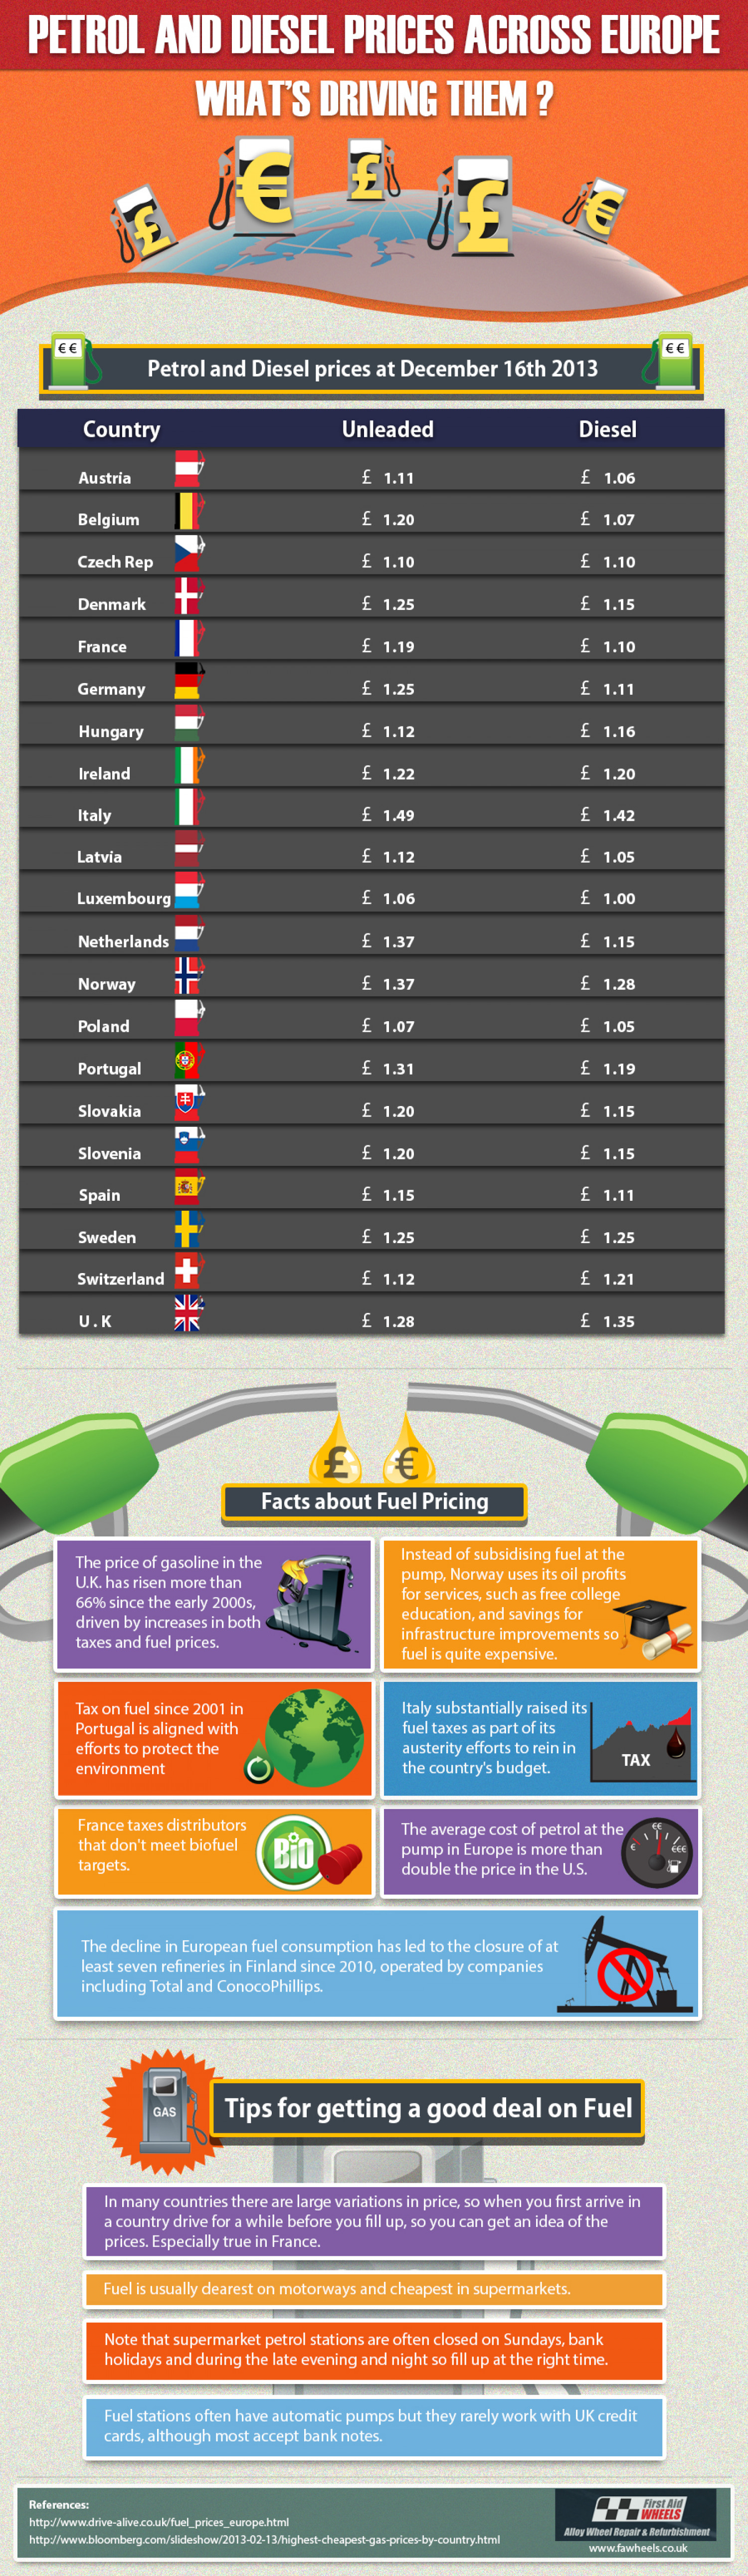 Europe Fuel Prices Infographic